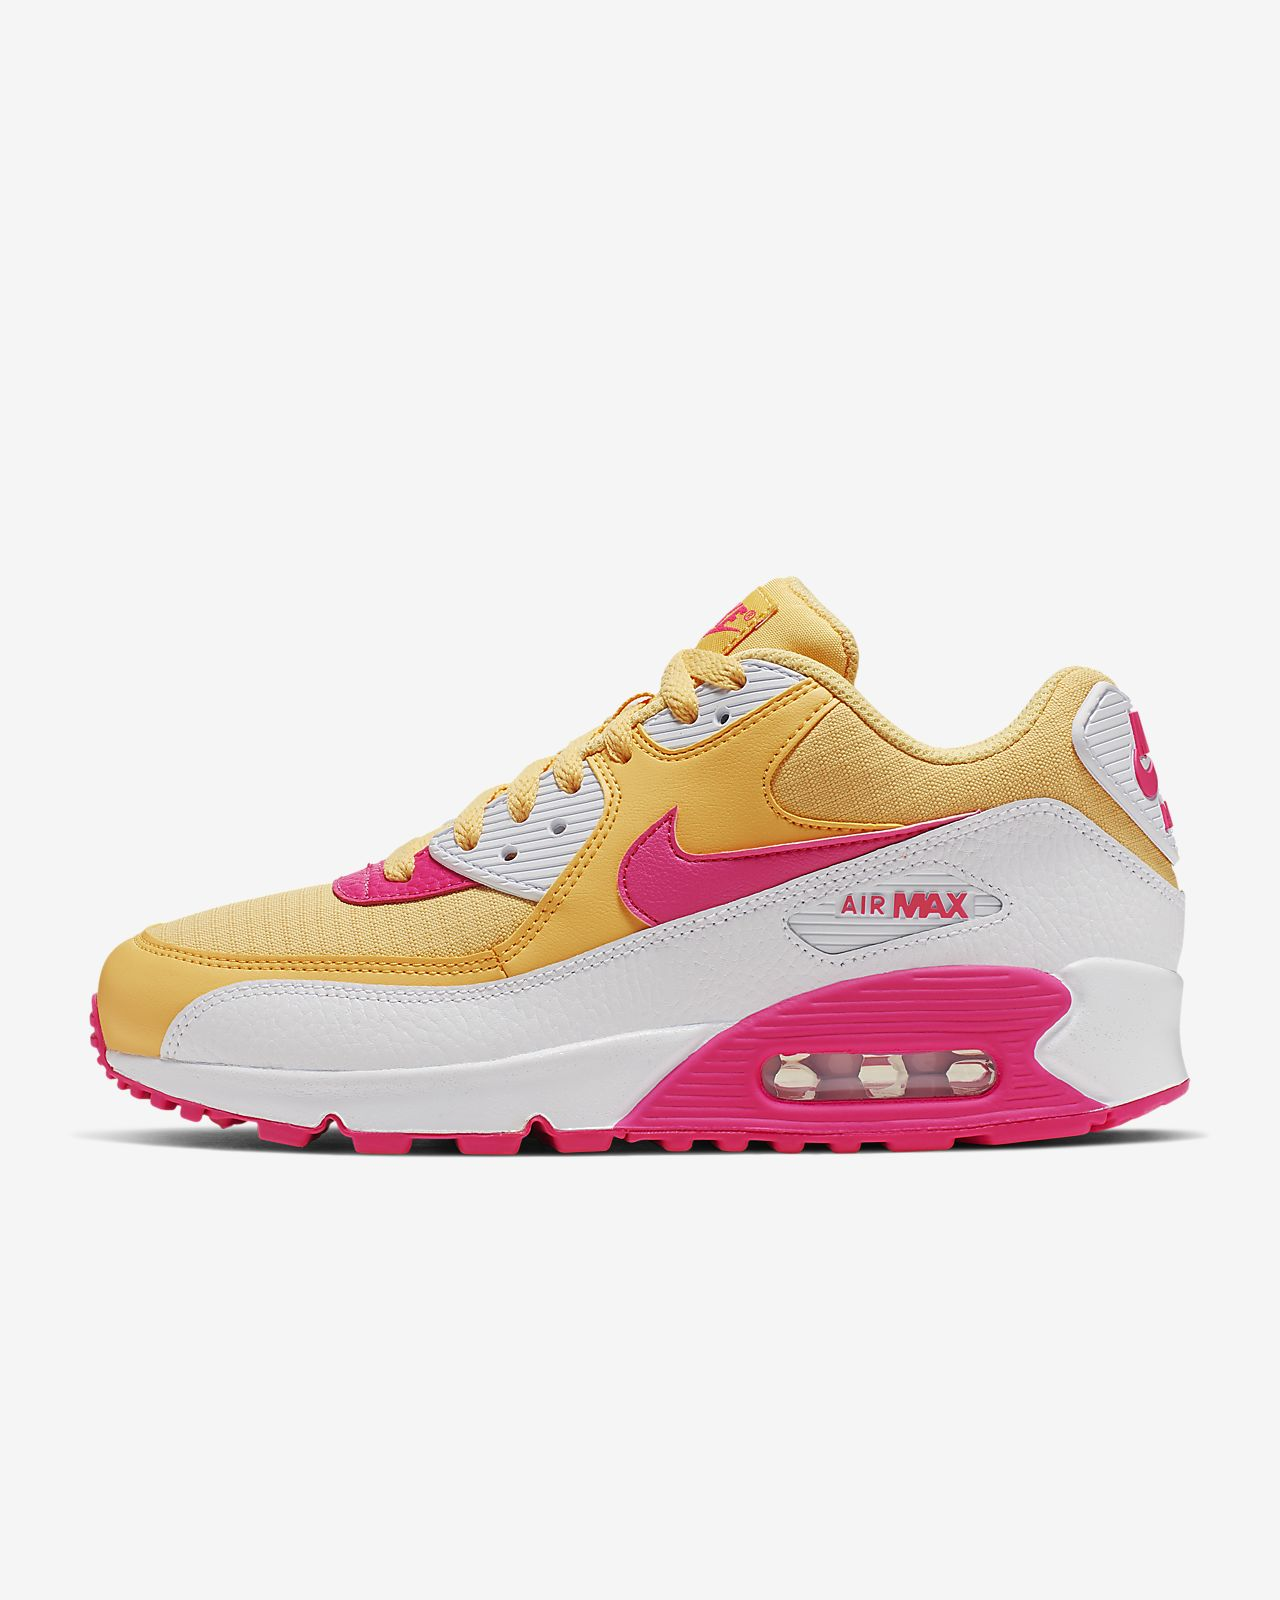 super popular 9e353 555d5 Women s Shoe. Nike Air Max 90